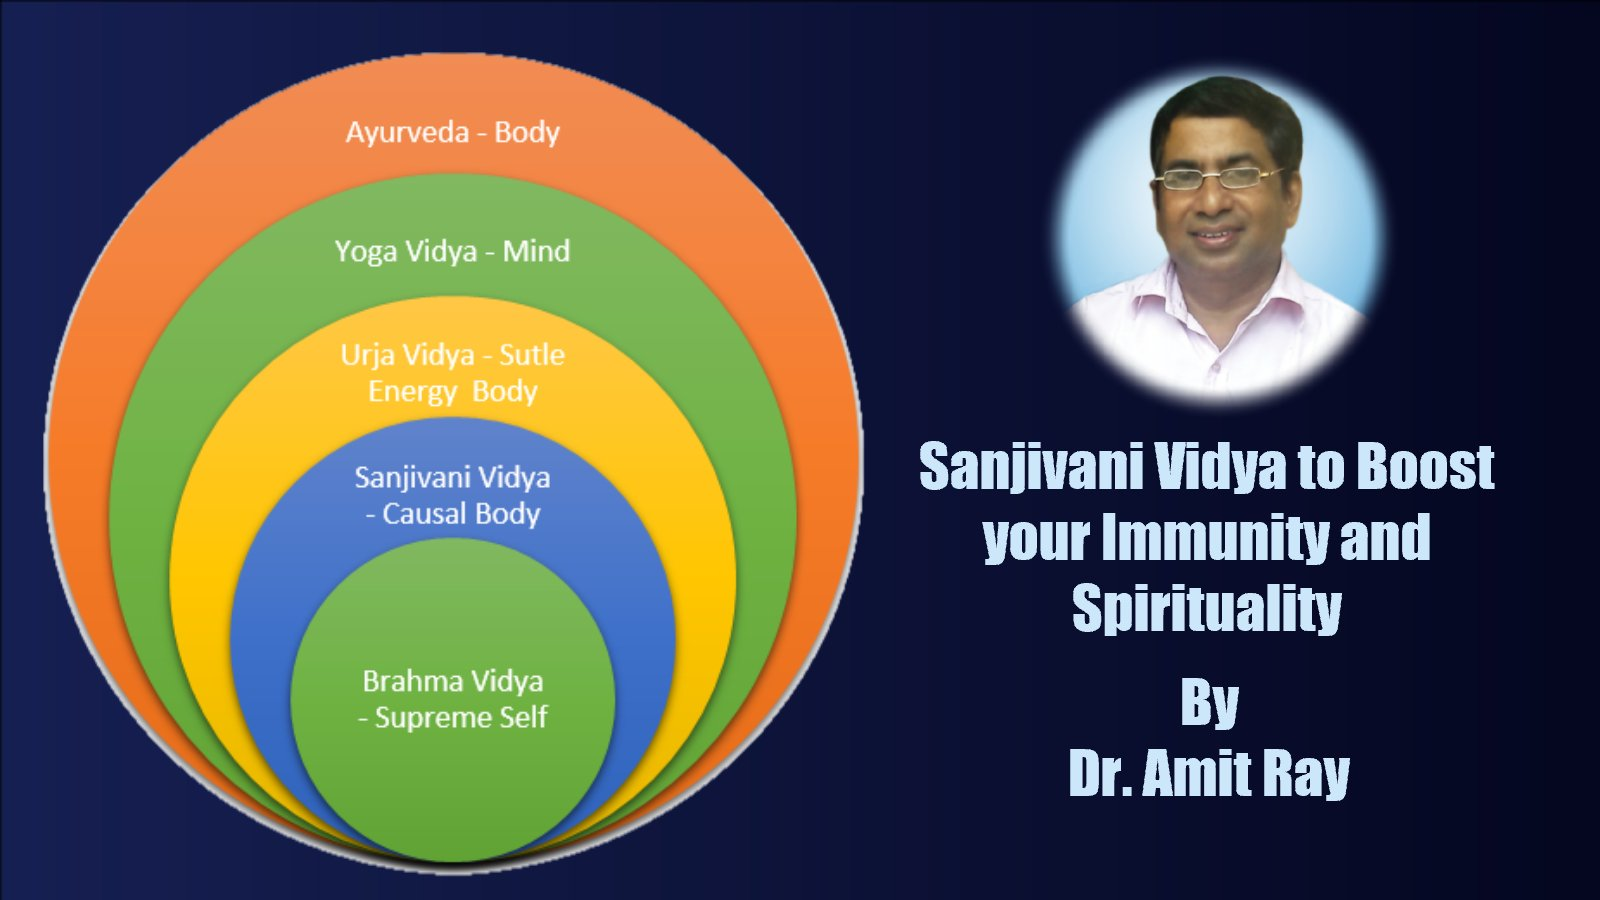 Sanjivani Vidya and Urja Vidya for Immunity and Spirituality Amit Ray Teachings